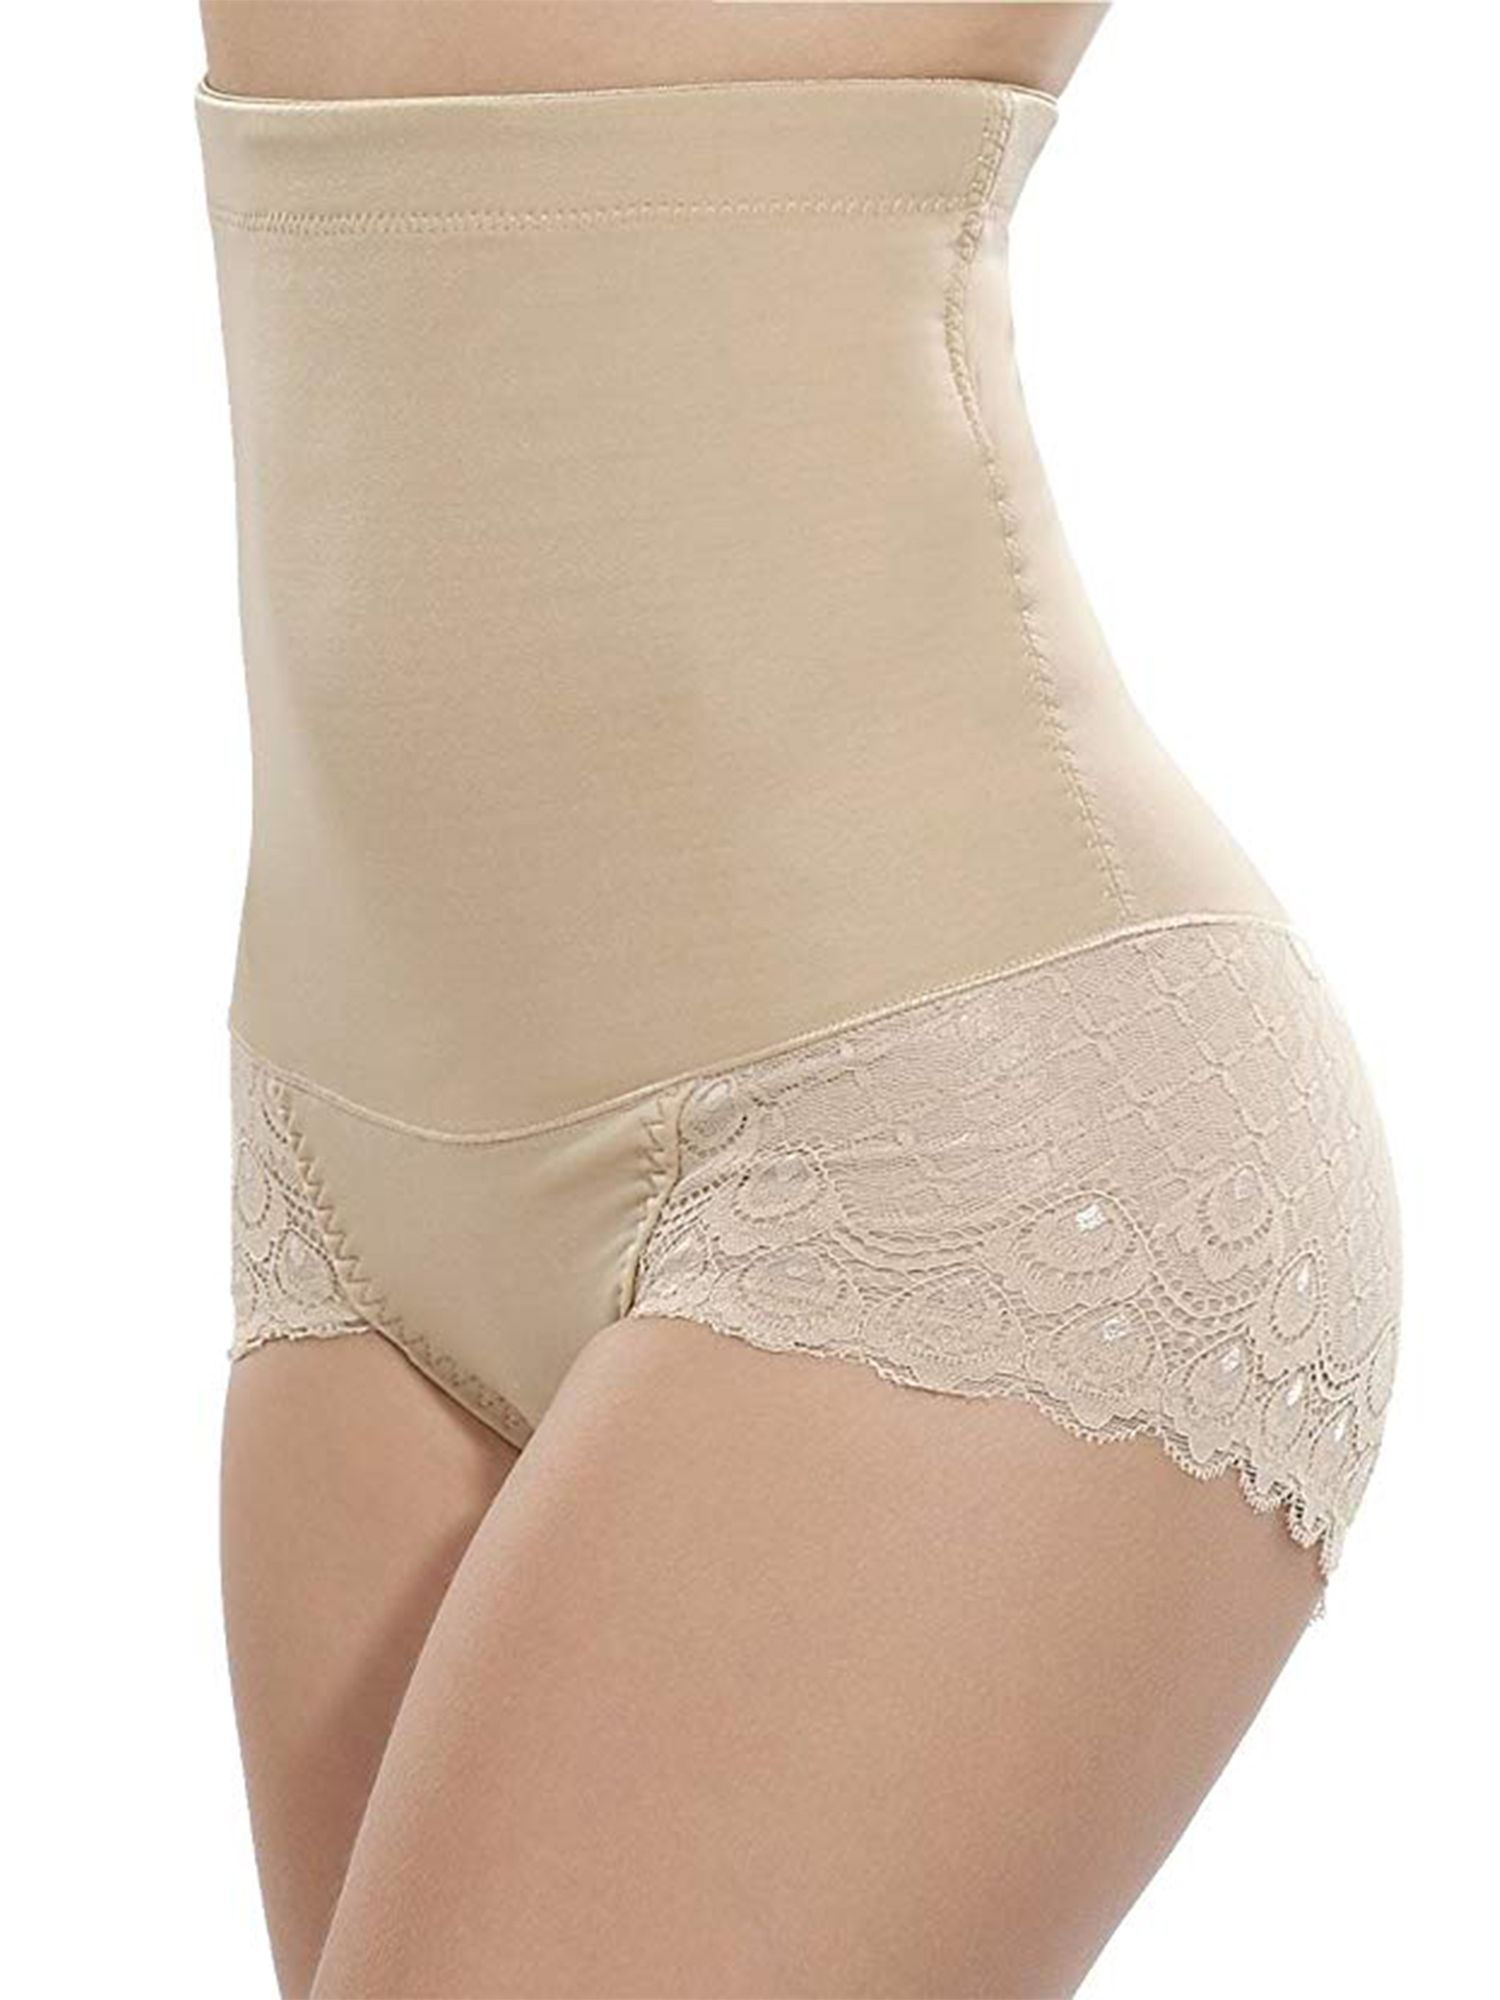 c97c7c0f16 High Waist Slimming Shaping Panty Waist Trainer Sexy Lace Panties Butt Lift Body  Shaper Underwear Lingerie